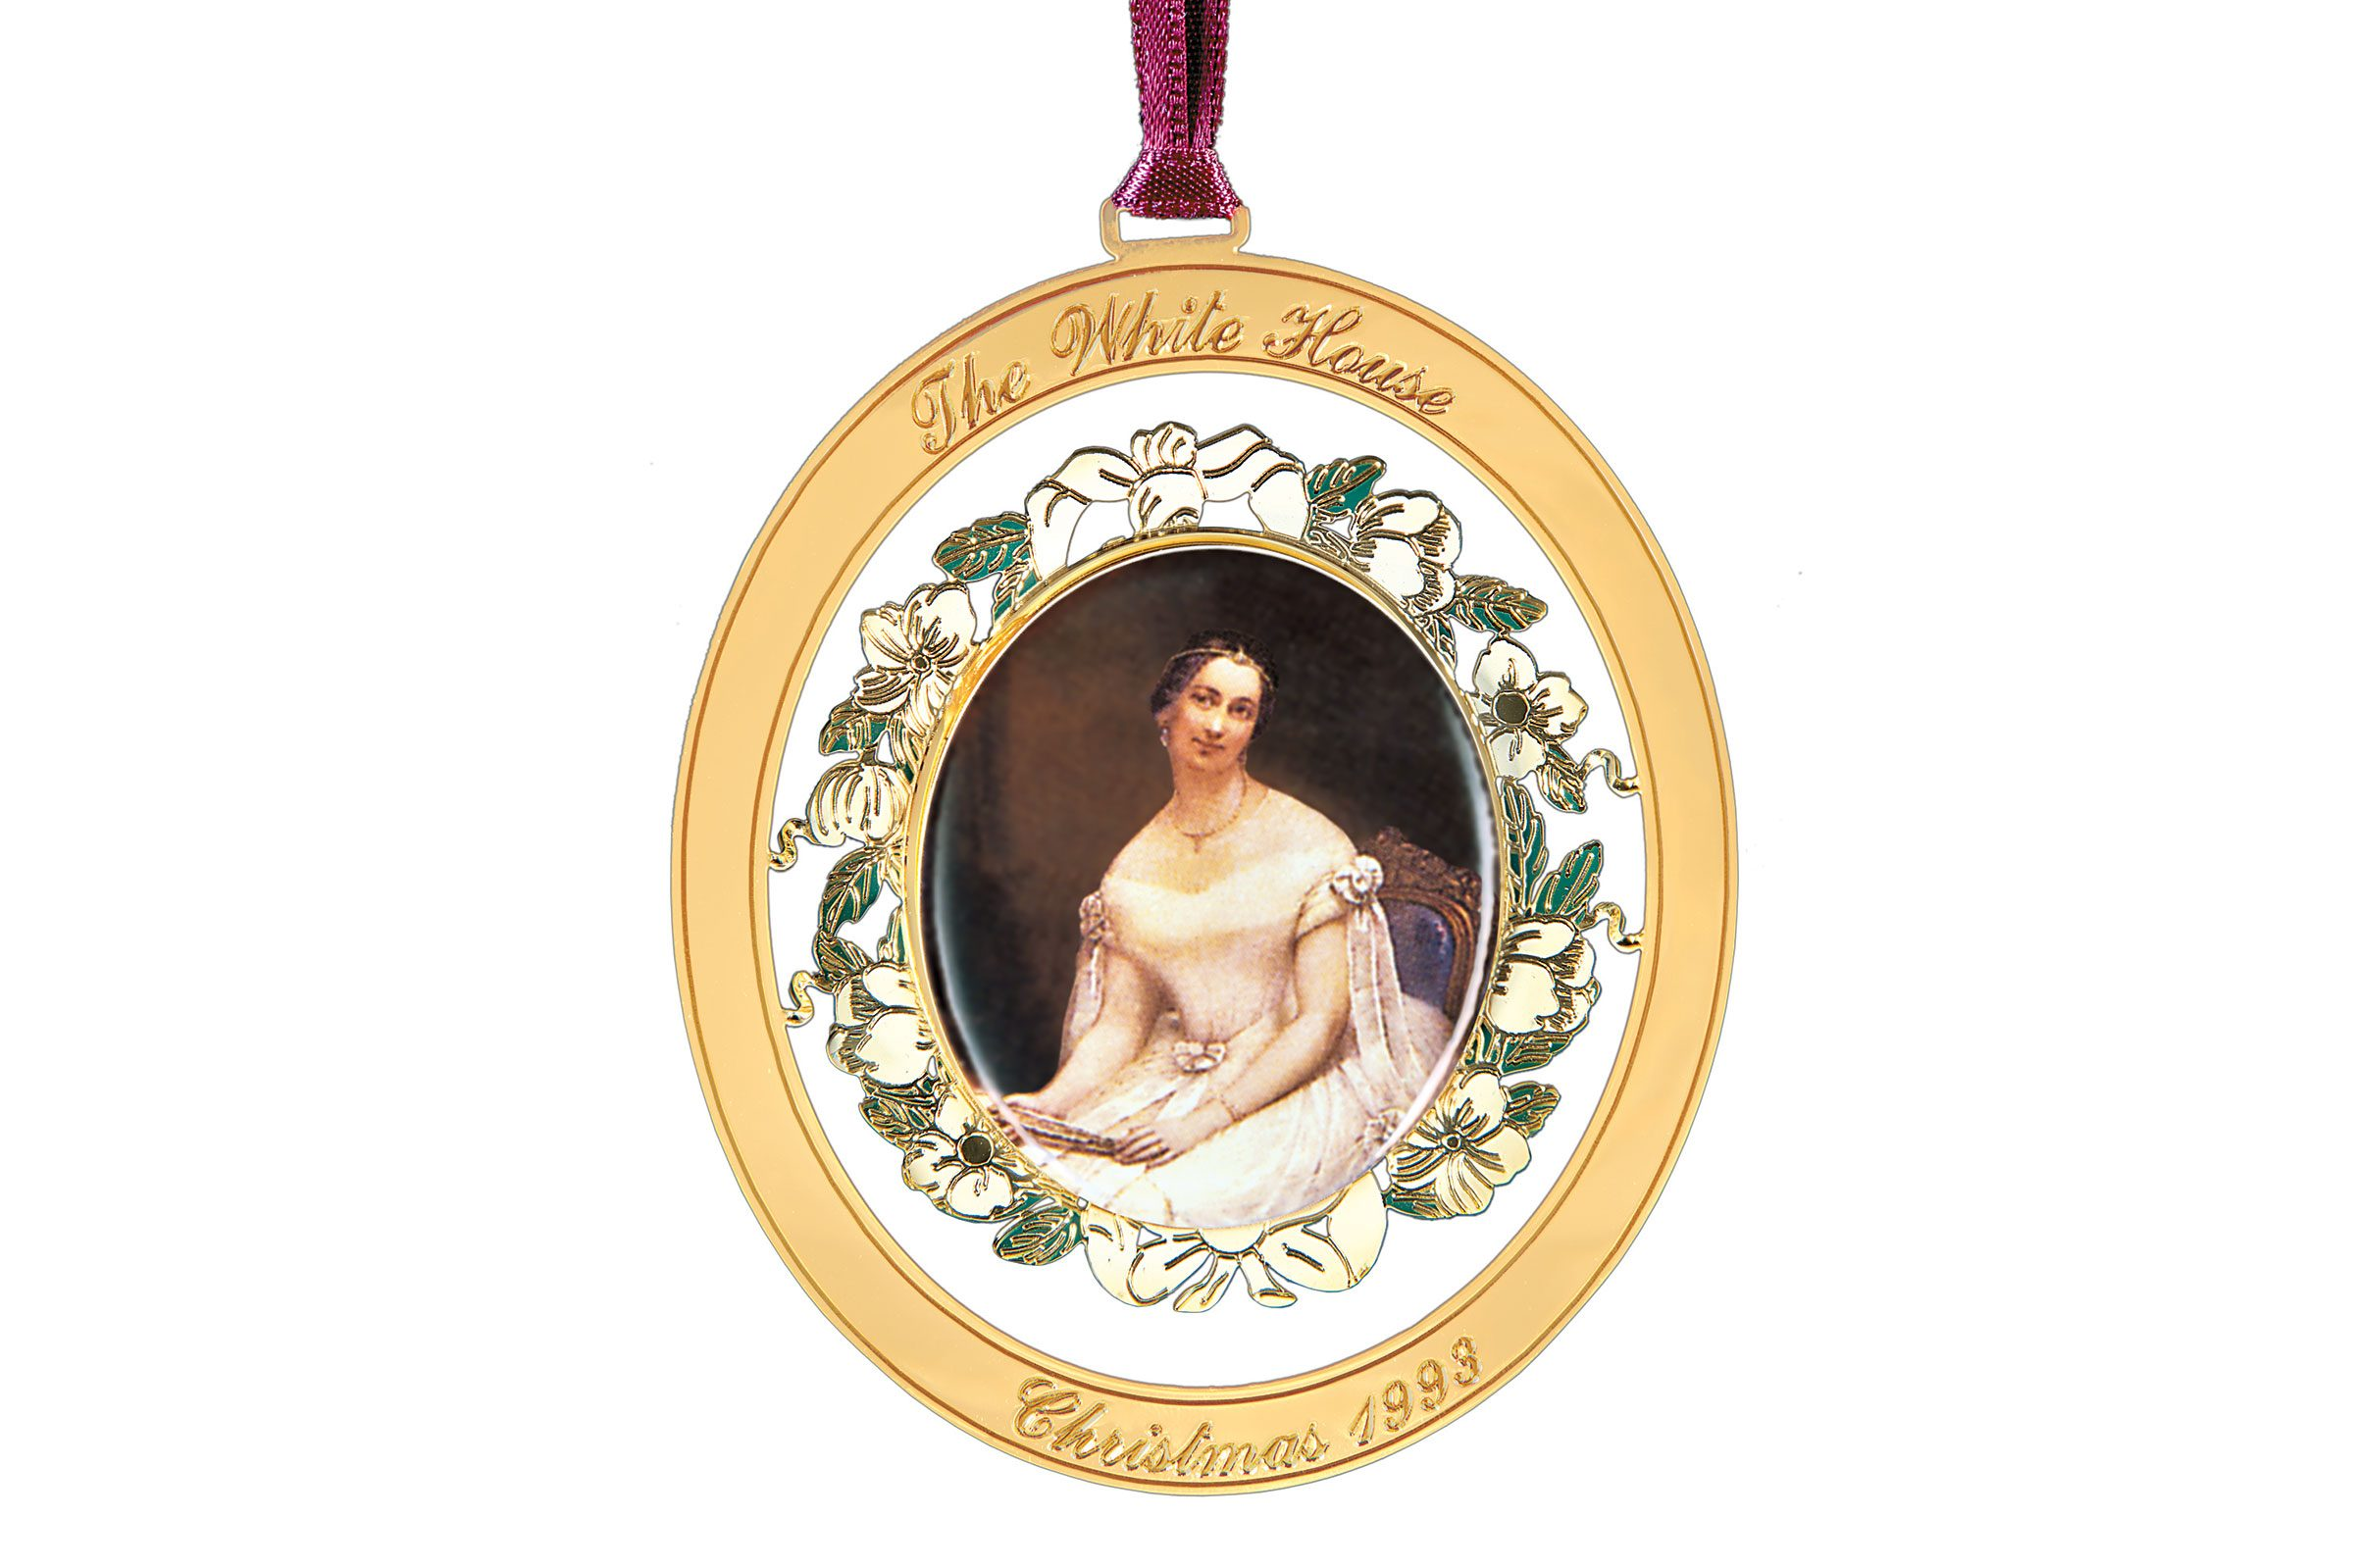 White house christmas ornaments by year - White House Christmas Ornaments Photos Readers Digest